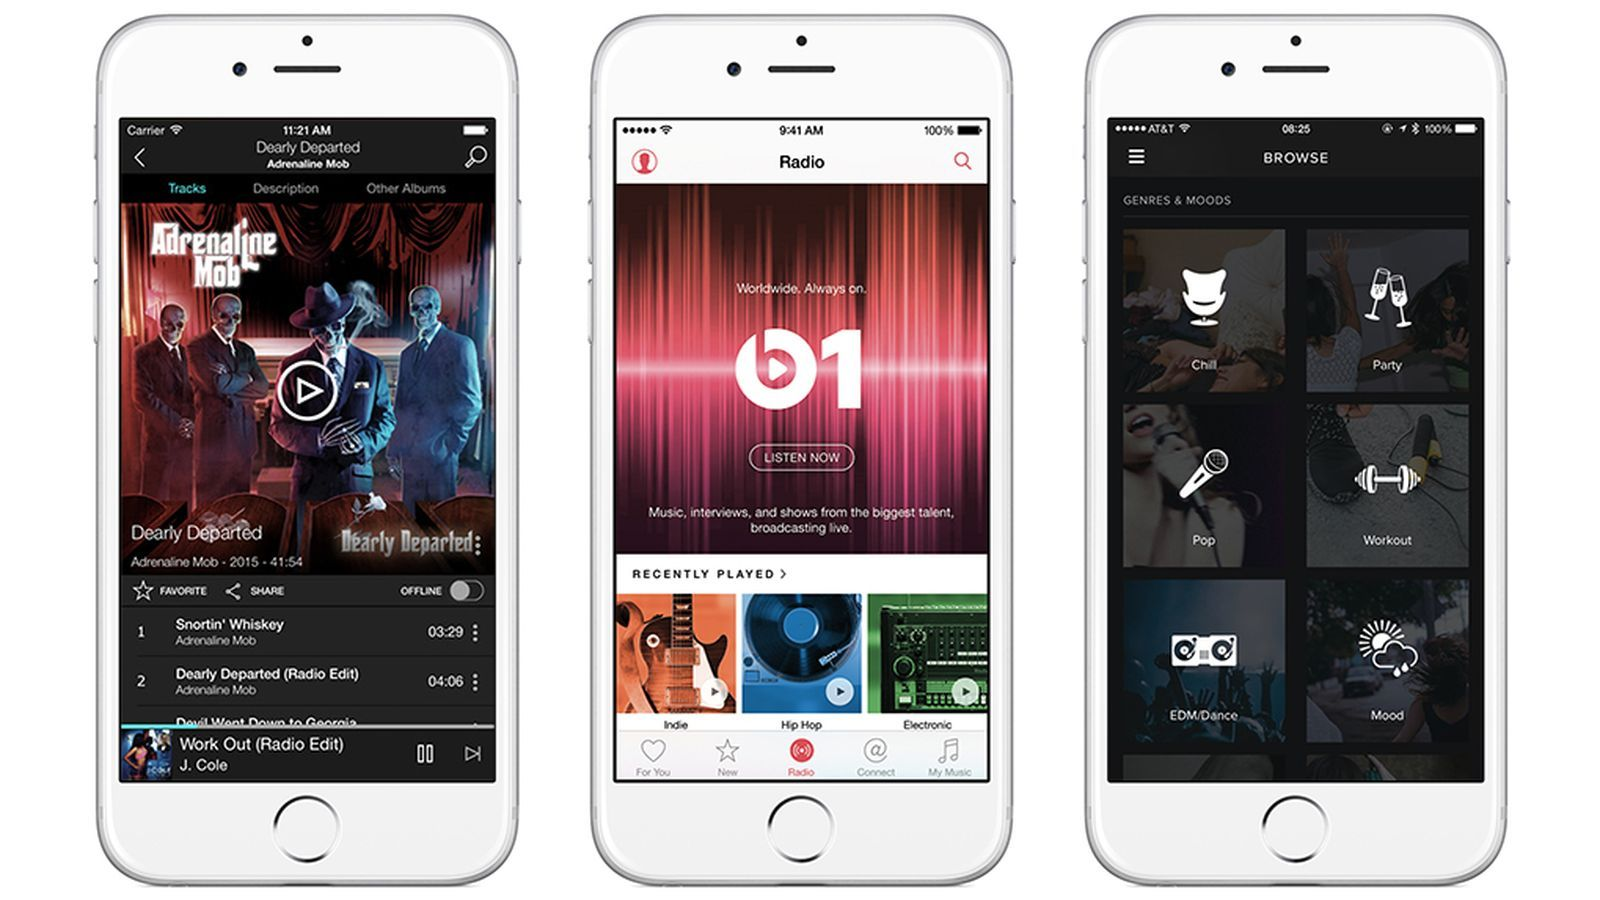 What sounds better Apple Music, Tidal, or Spotify